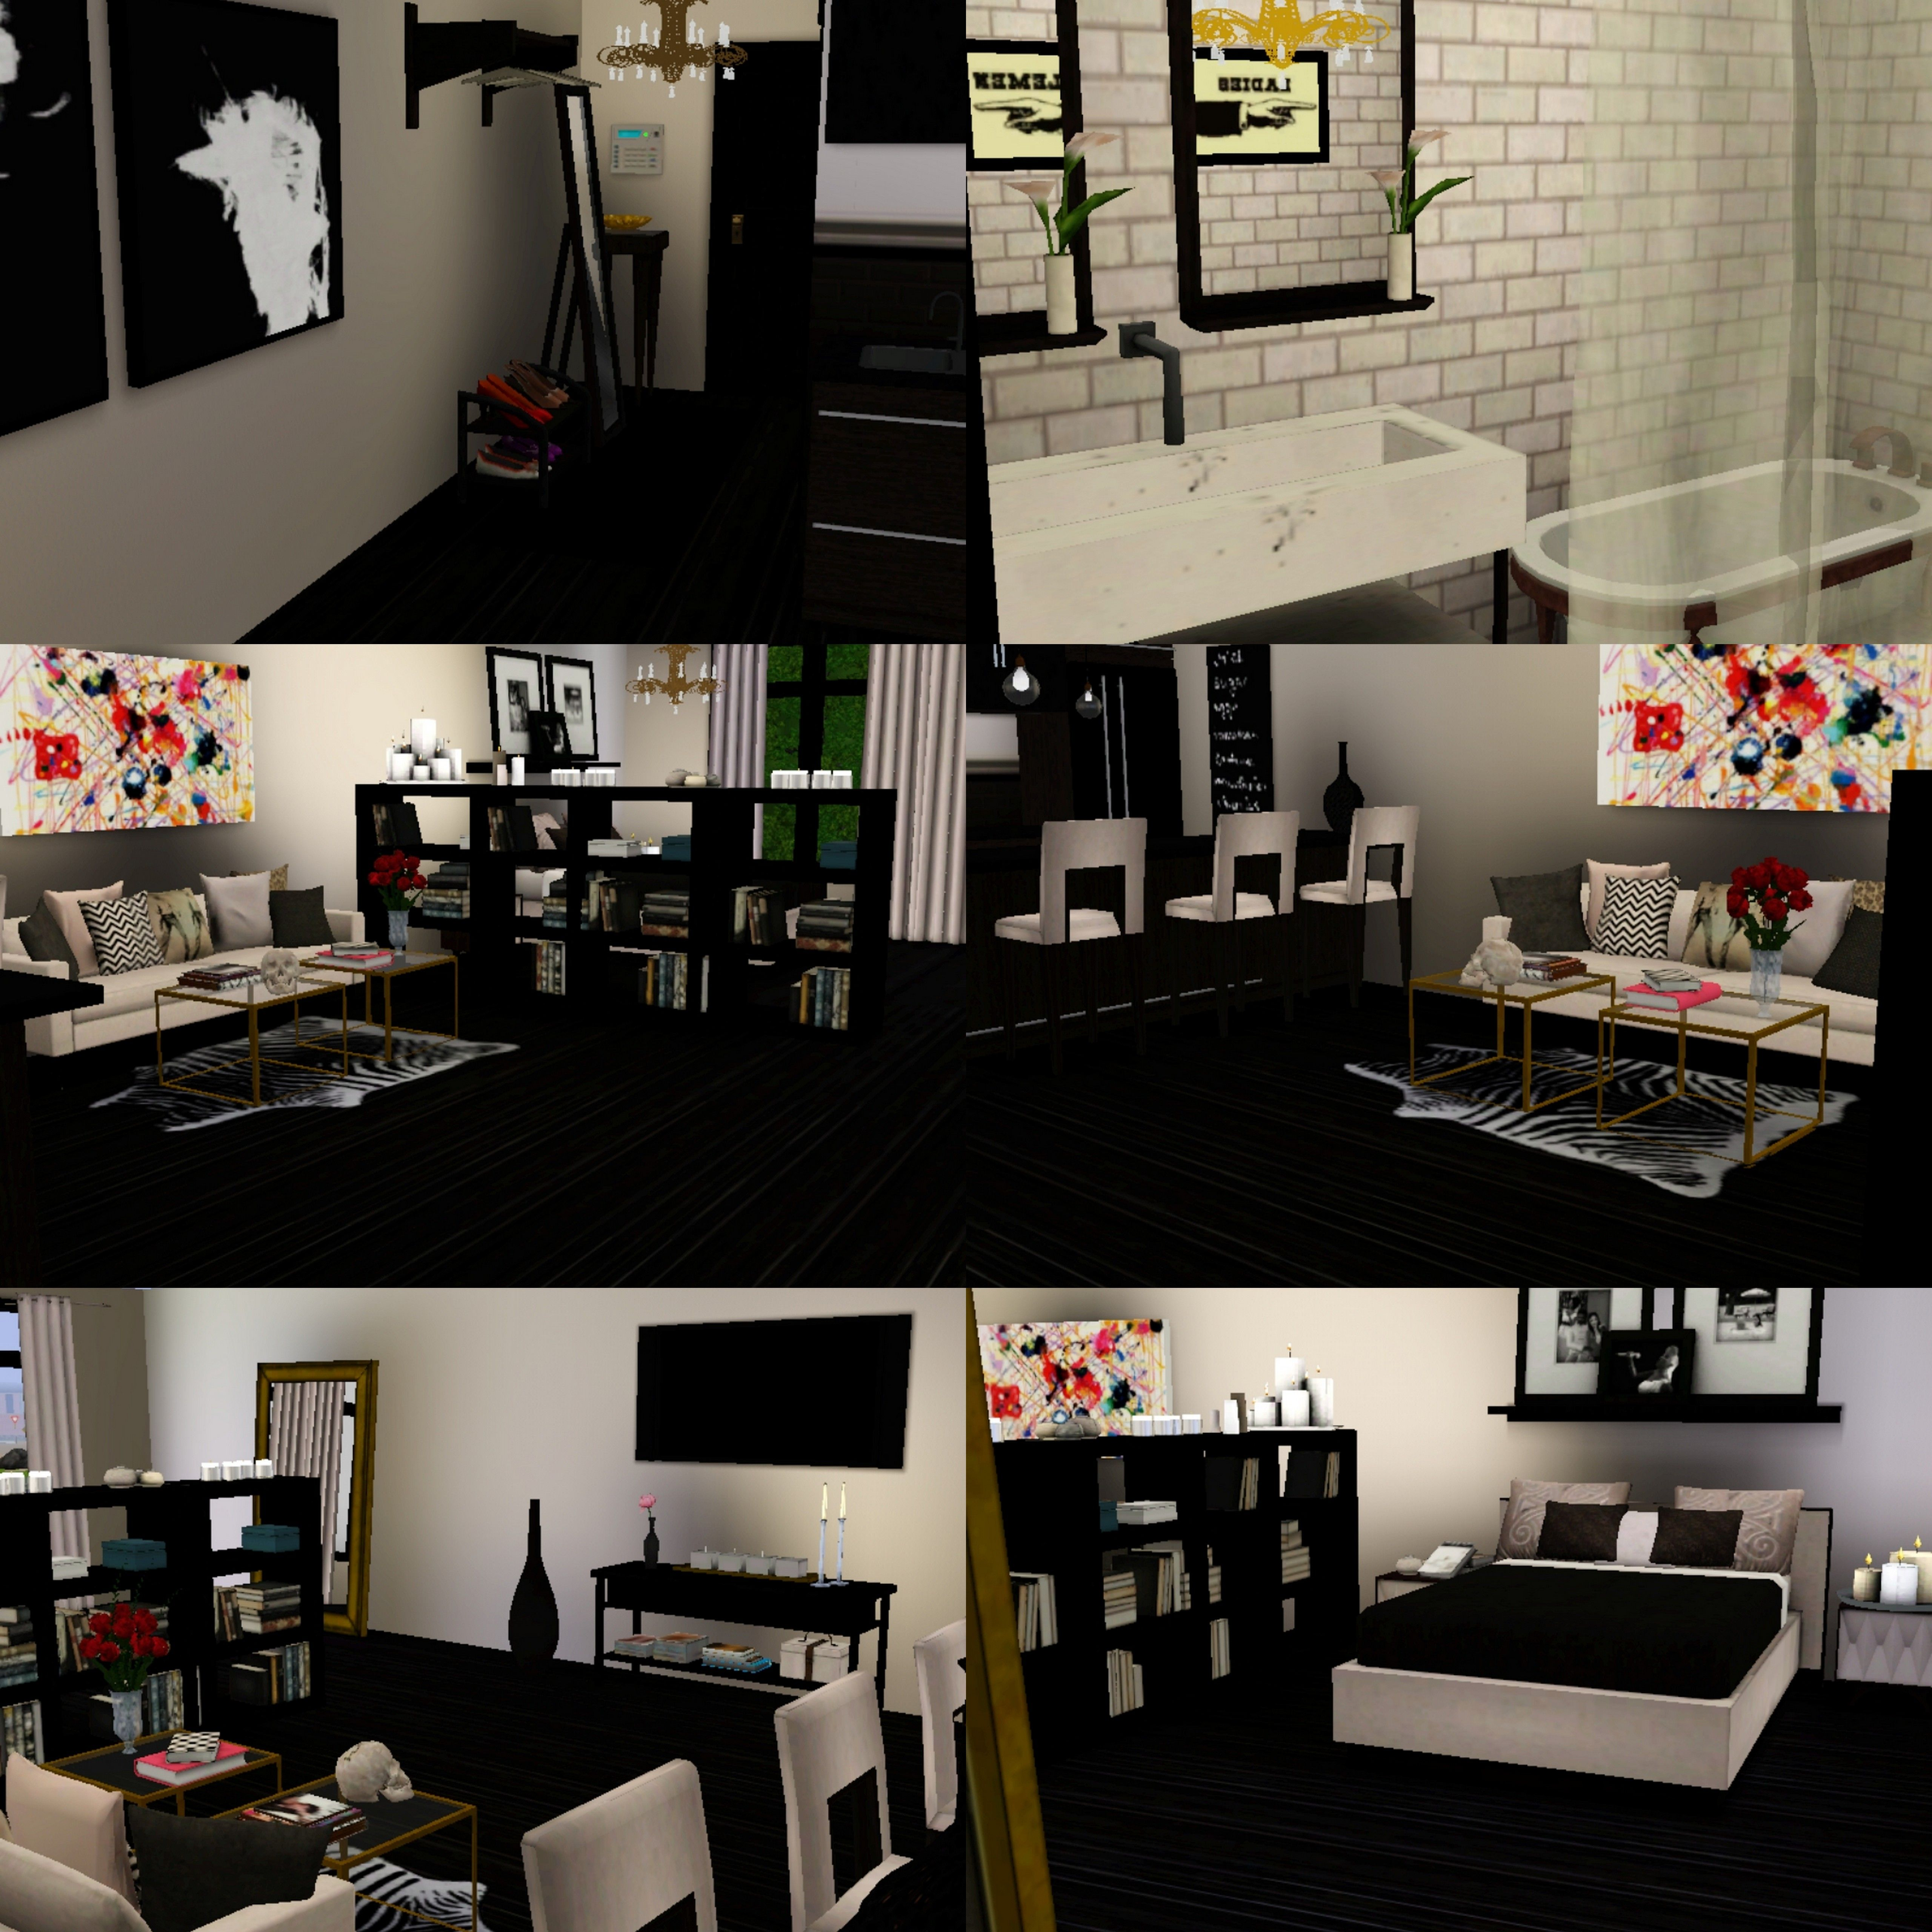 My dream studio apartment Black grey beige white and brown interior with colorful elements